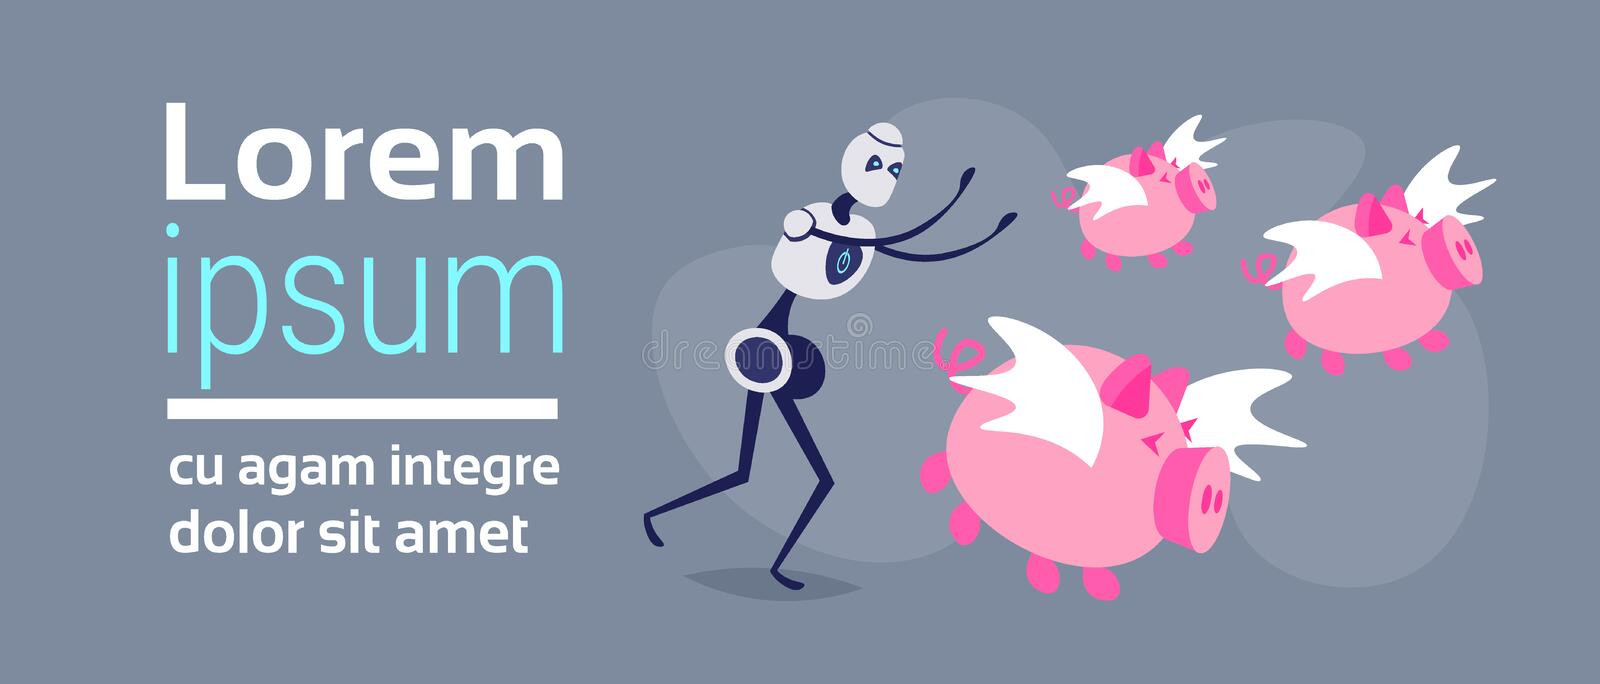 Robot trying catch flying piggybank pigs growth wealth artificial intelligence concept money piggy bank horizontal flat. Copy space vector illustration royalty free illustration